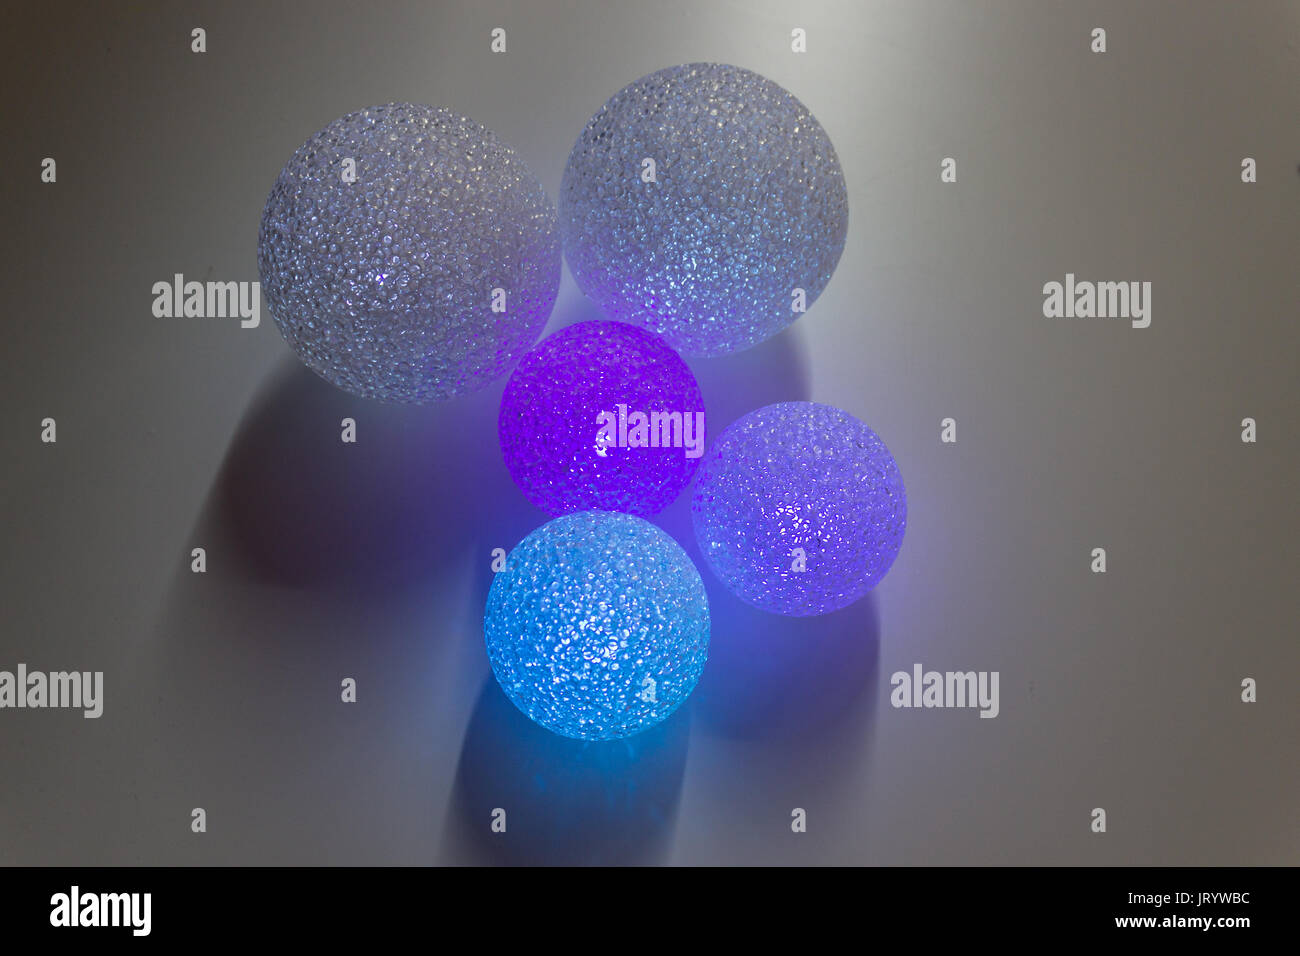 Some abstract colorful balls background. Multi Colored wooden balls on luminous background. - Stock Image